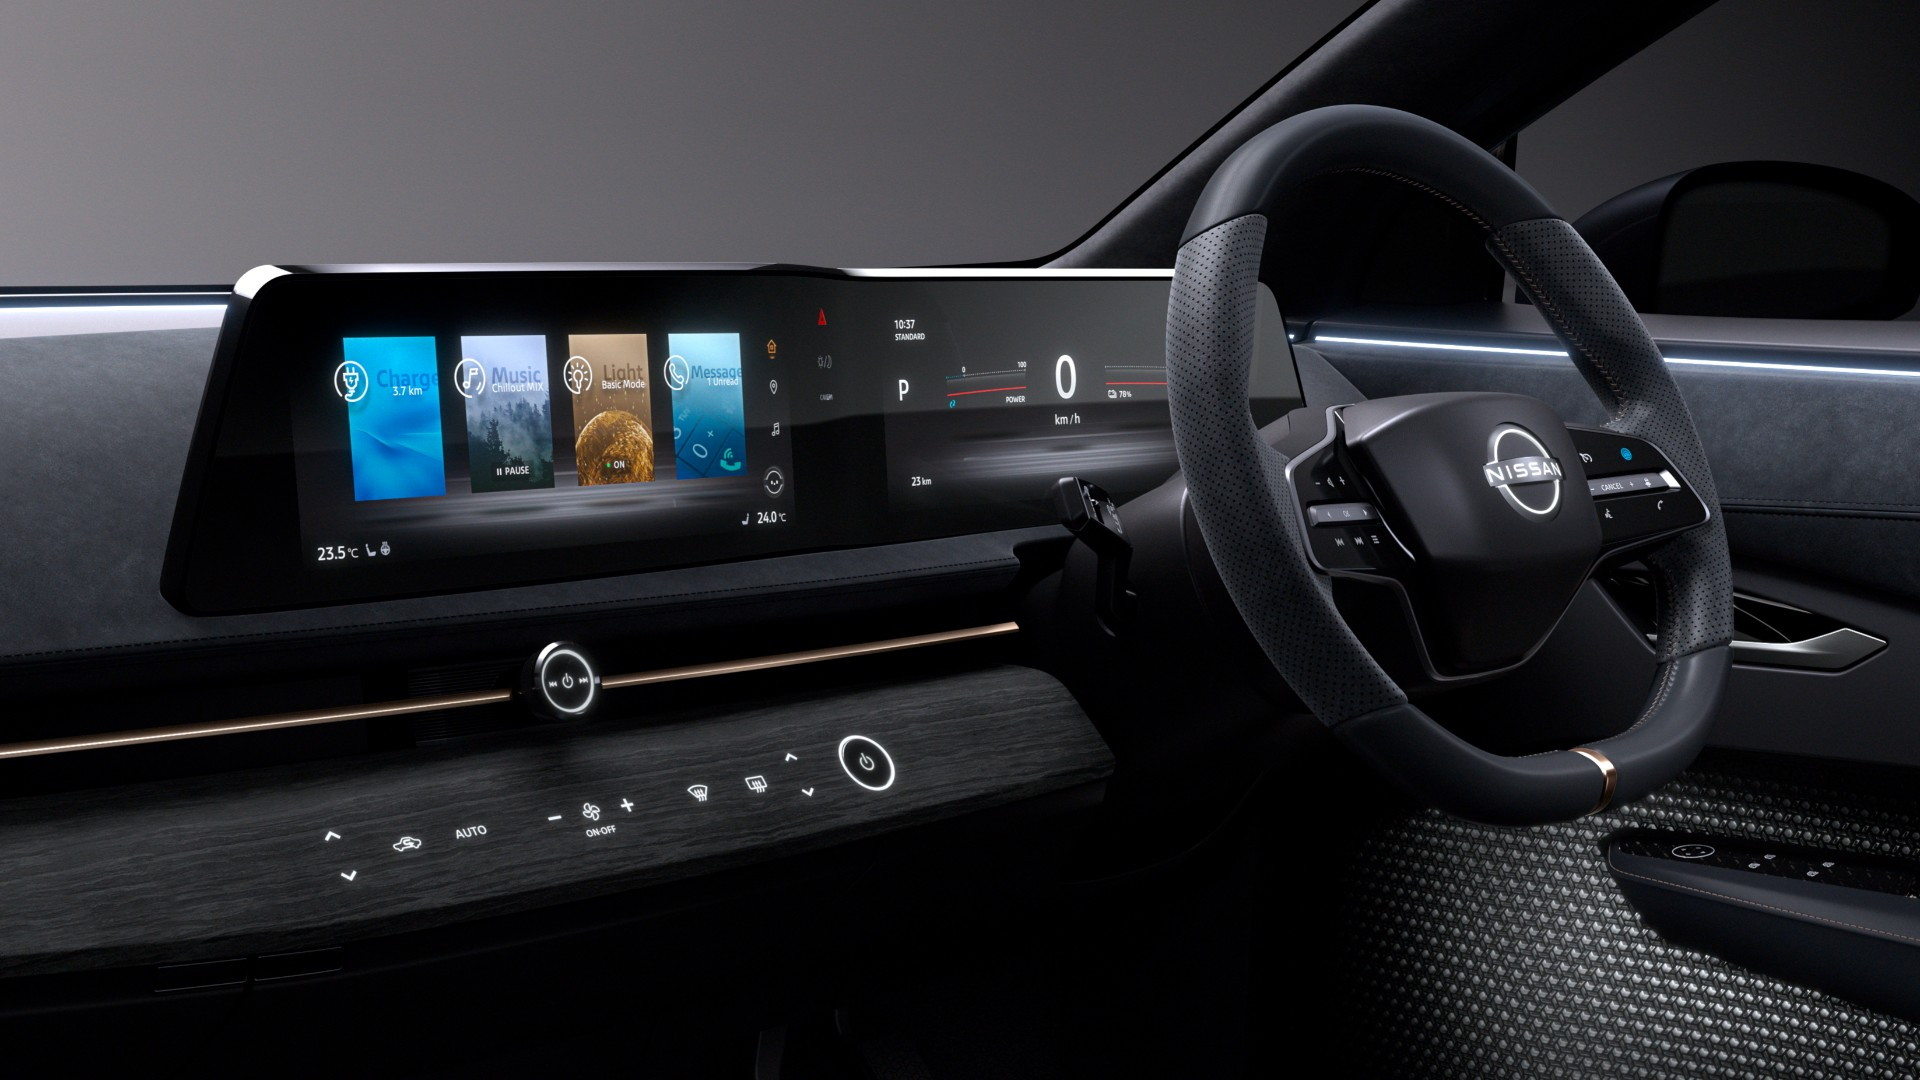 Nissan Ariya Concept instrument panel design